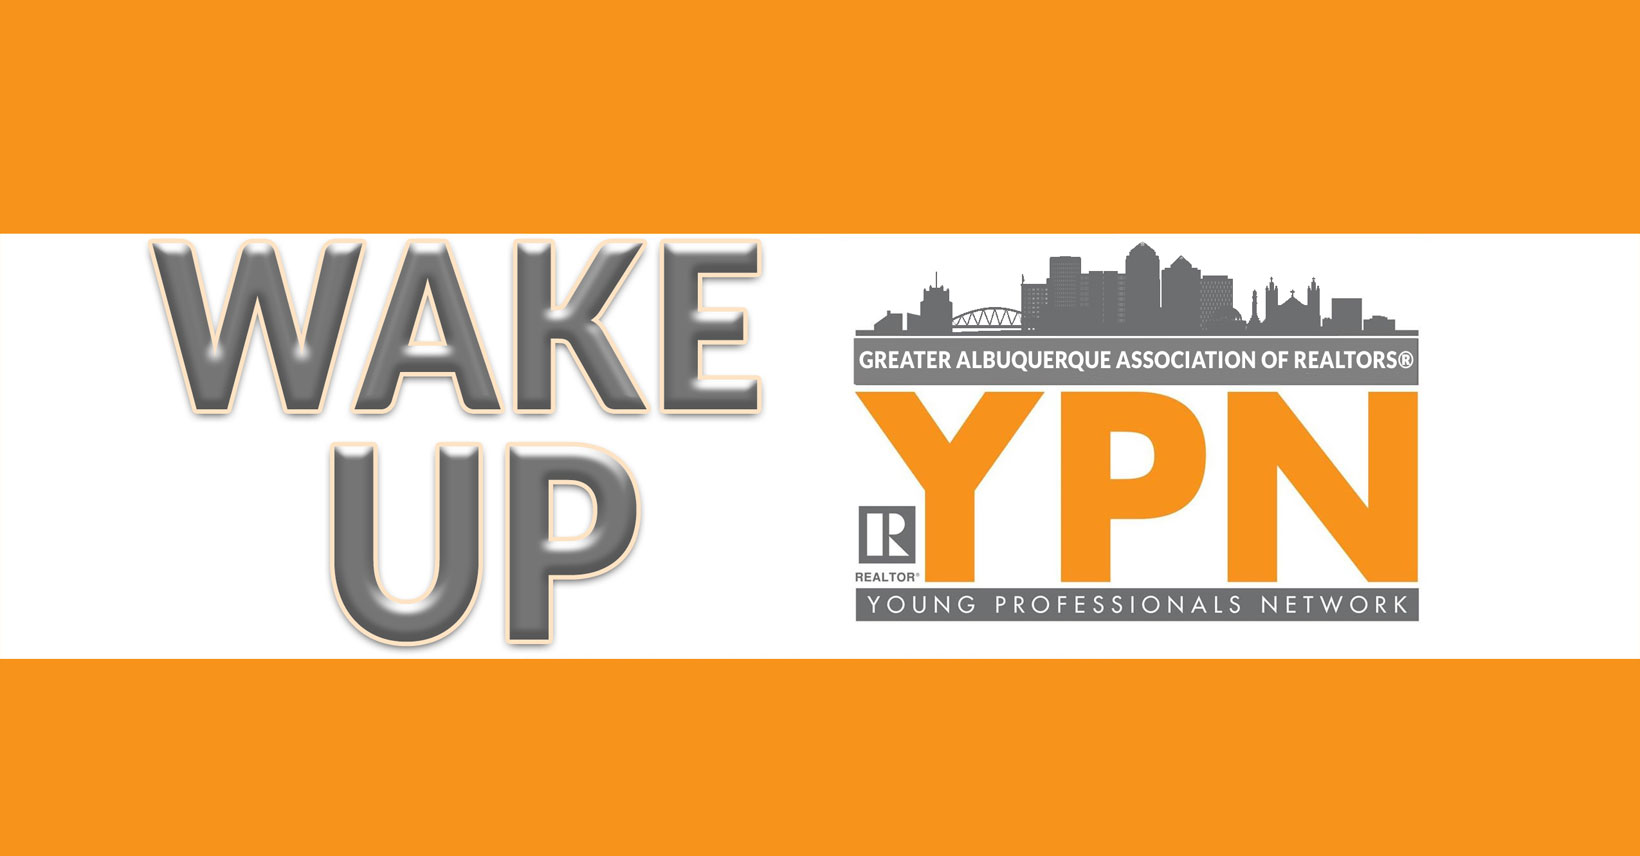 Wake Up with YPN on Friday, January 17th